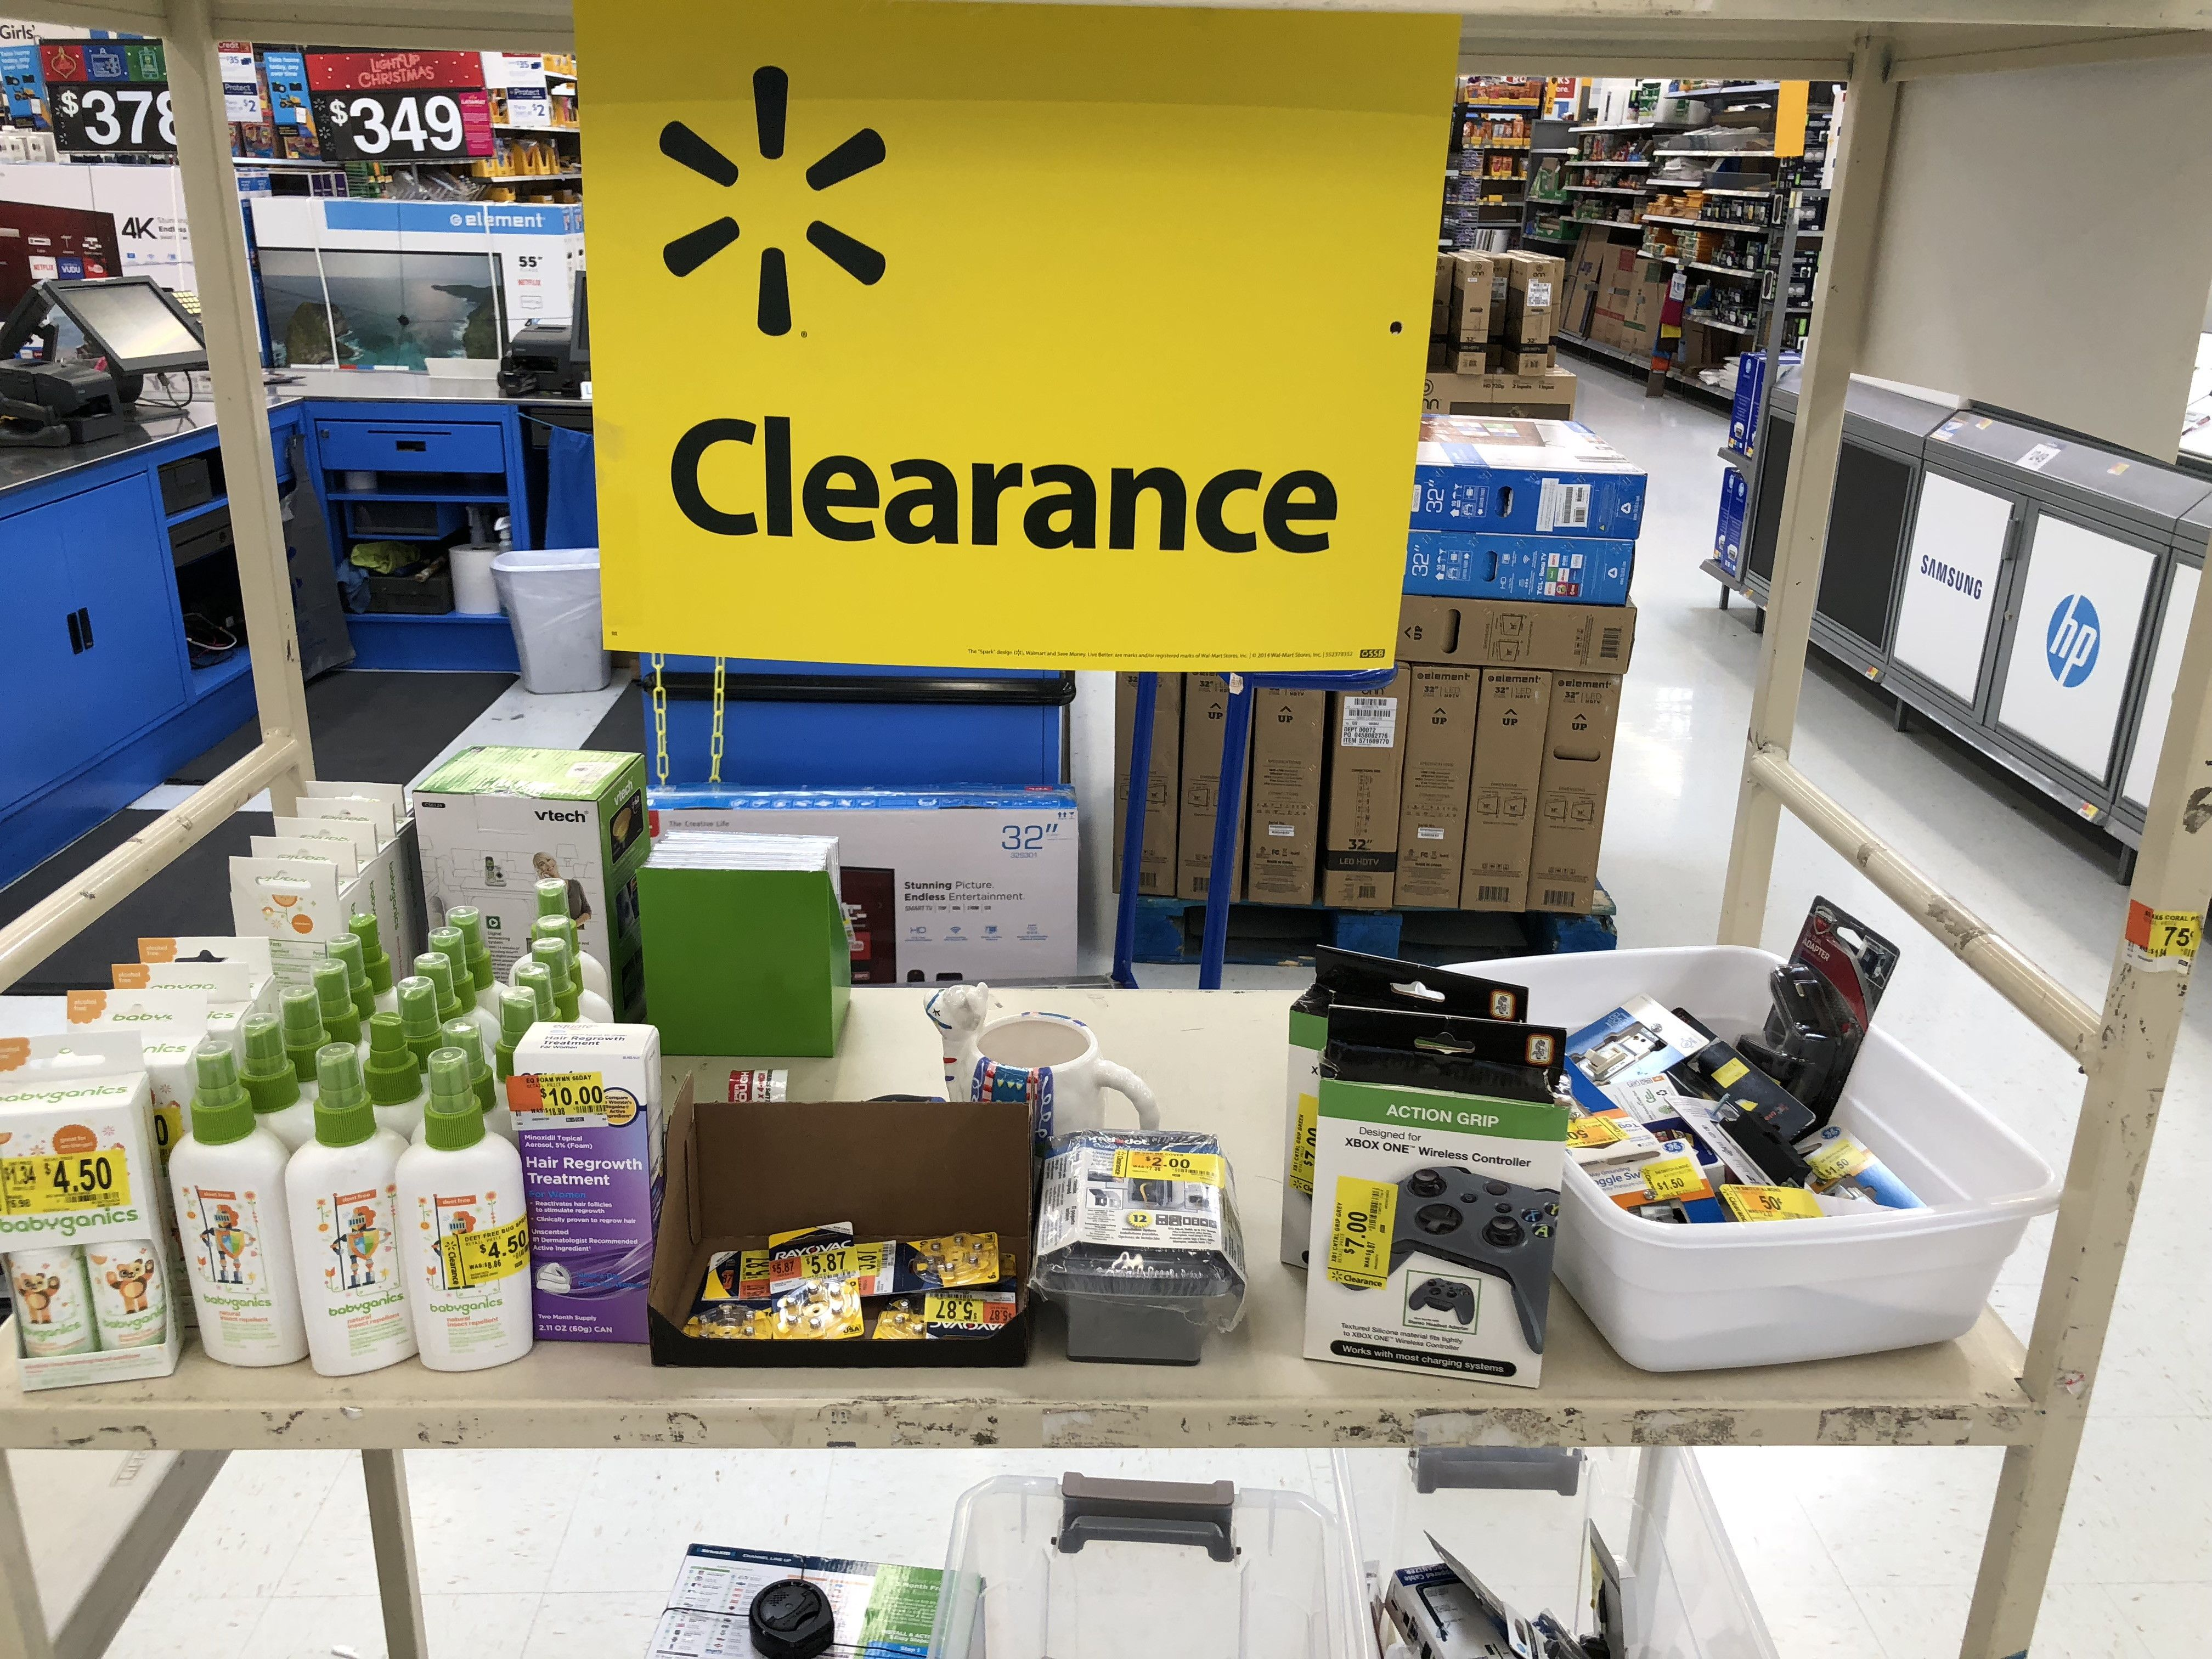 52e022cdd7 13 Clearance Secrets That'll Make You Love Walmart Again - The Krazy Coupon  Lady